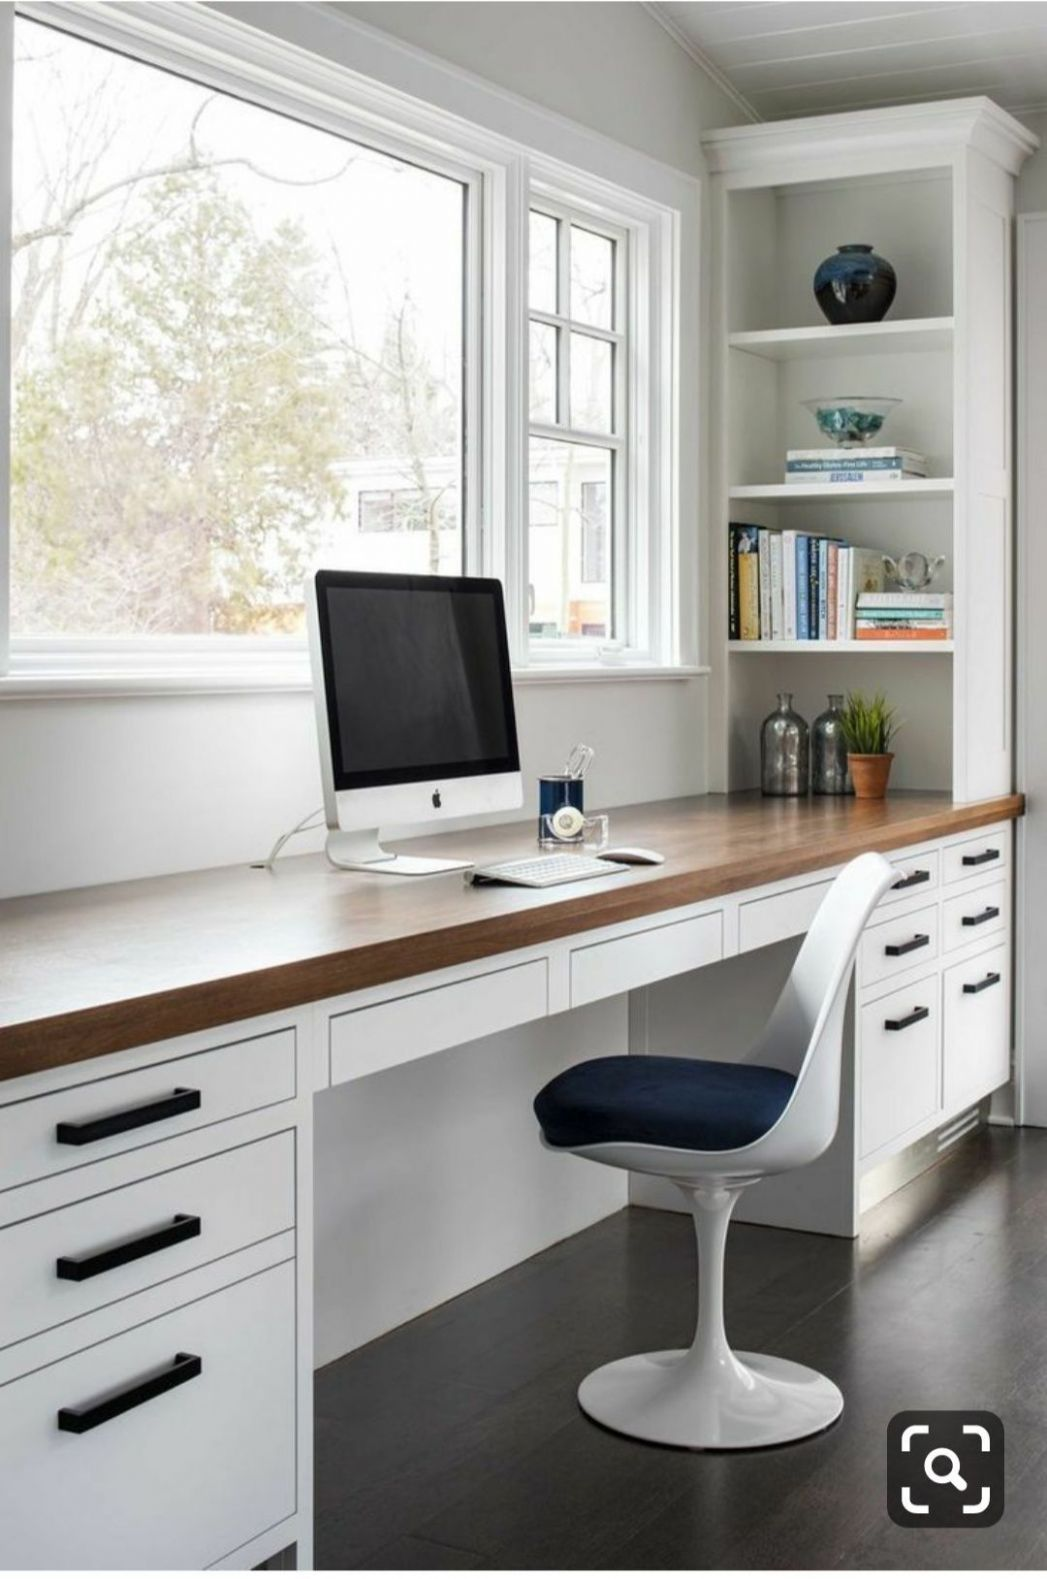 Cool Ideas On How To Spice Up Your Home Office | Home office ..